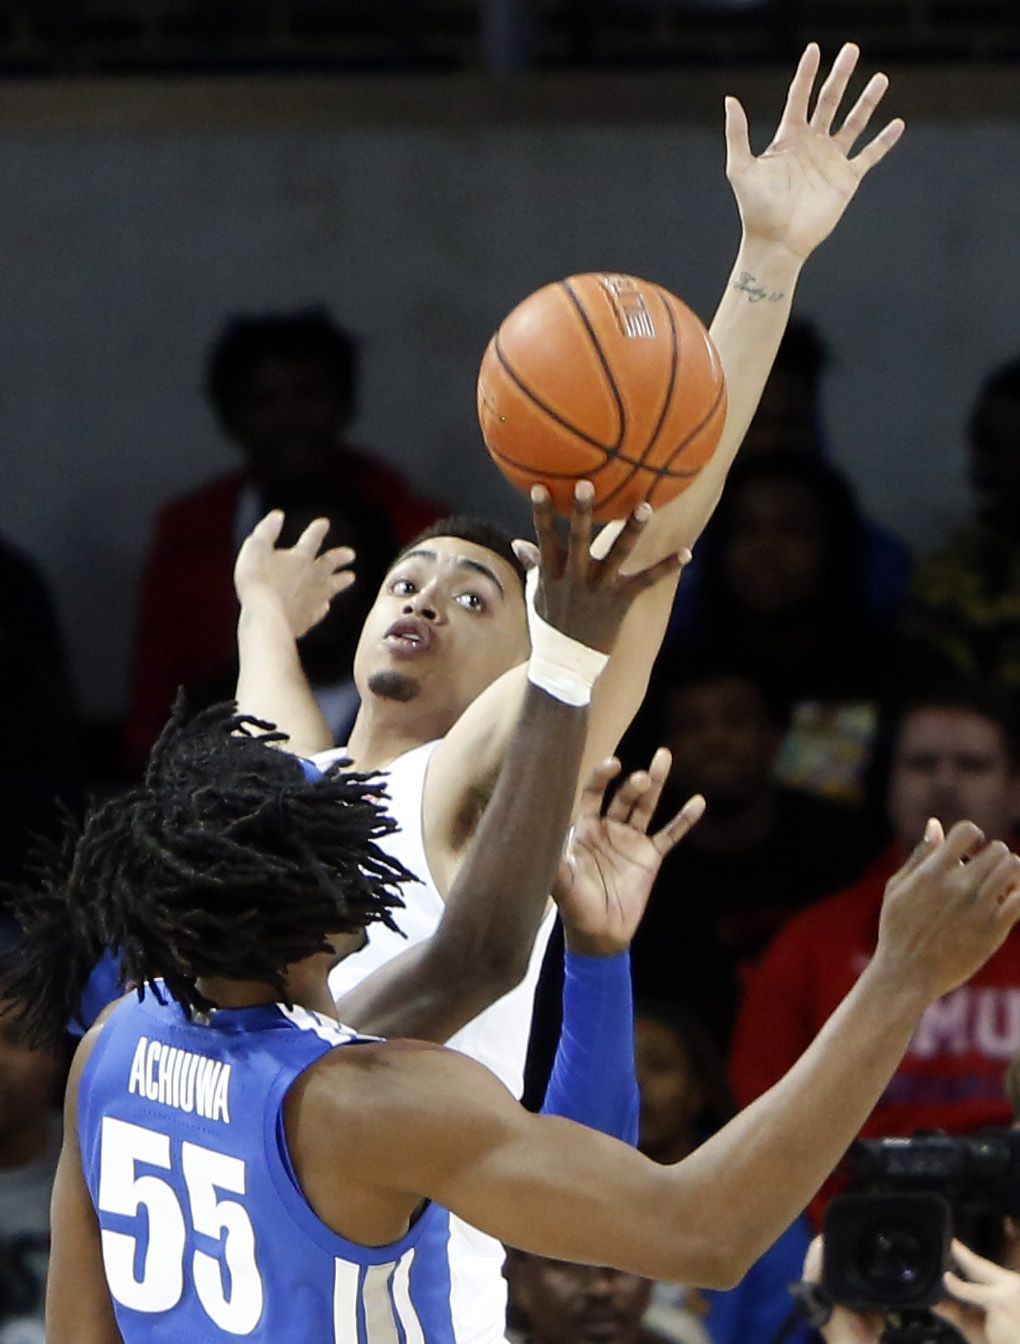 SMU forward Ethan Chargois (25) skies to defend against a shot by Memphis guard Damion Baugh (10) during first half action. The two teams from the NCAA's American Athletic Conference played their men's basketball game at SMU's Moody Coliseum in Dallas on February 25, 2020.